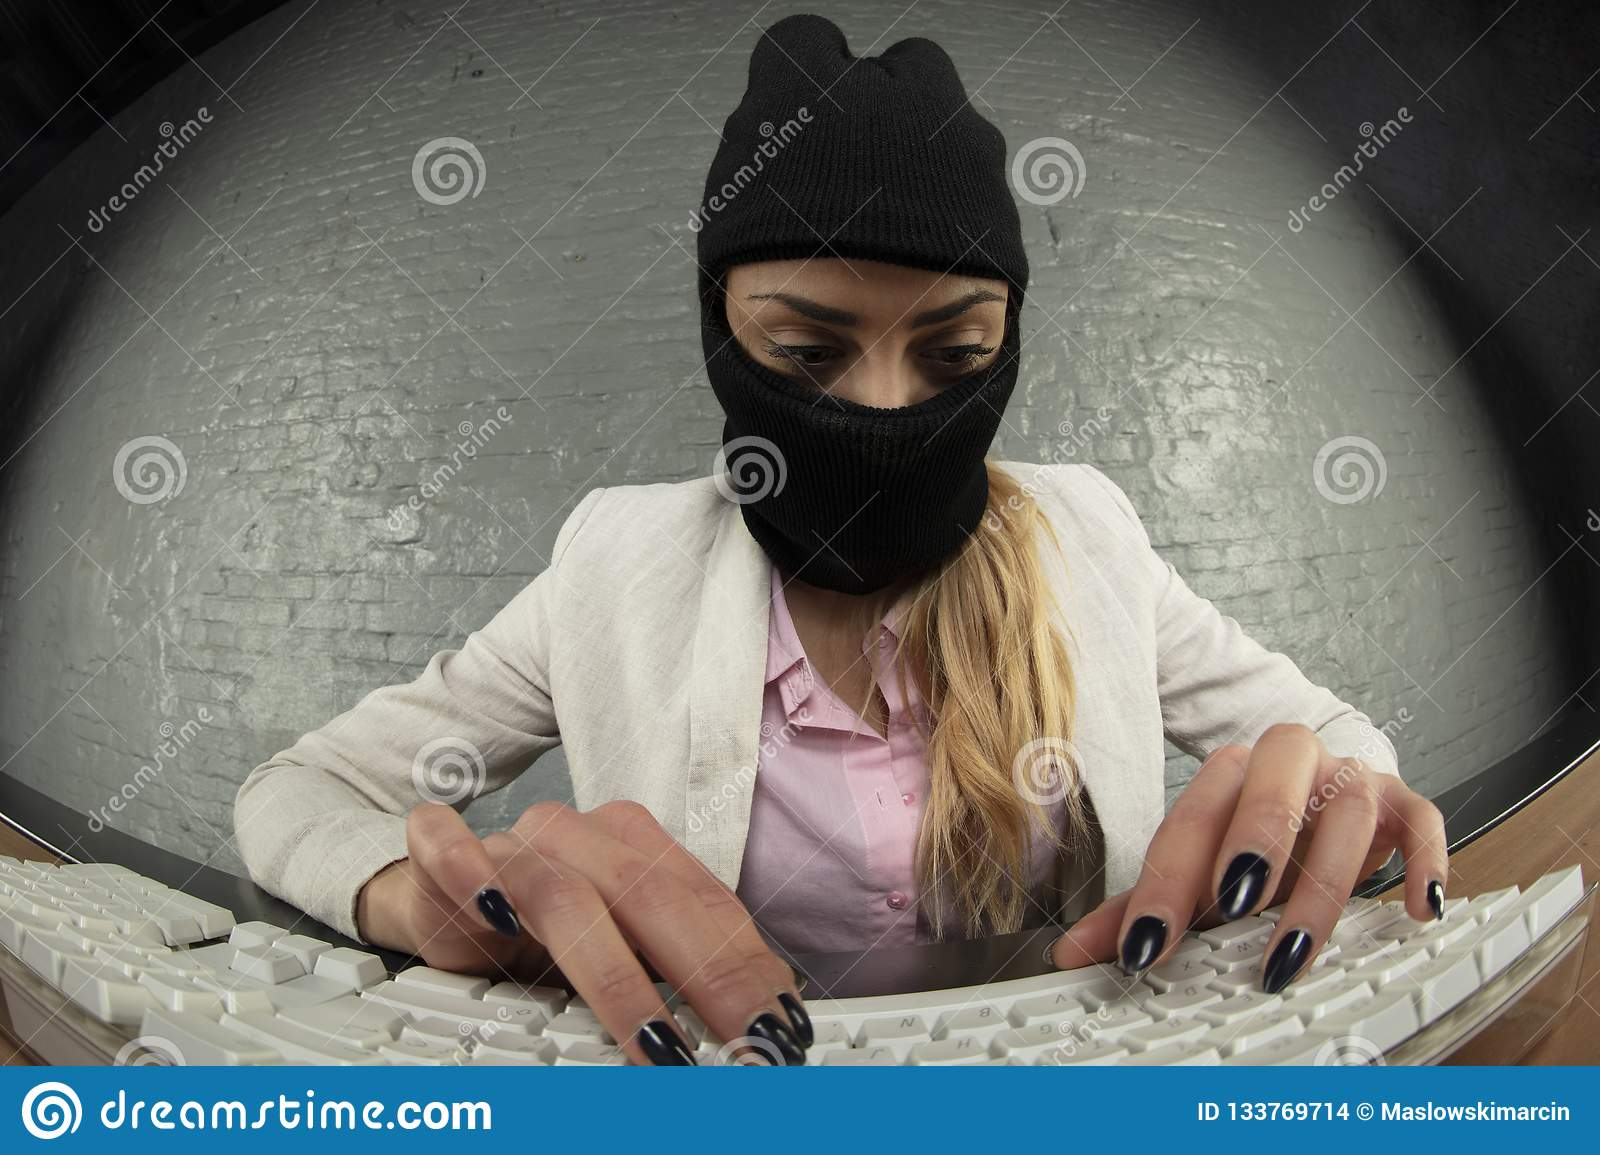 masked business woman steals data from a computer